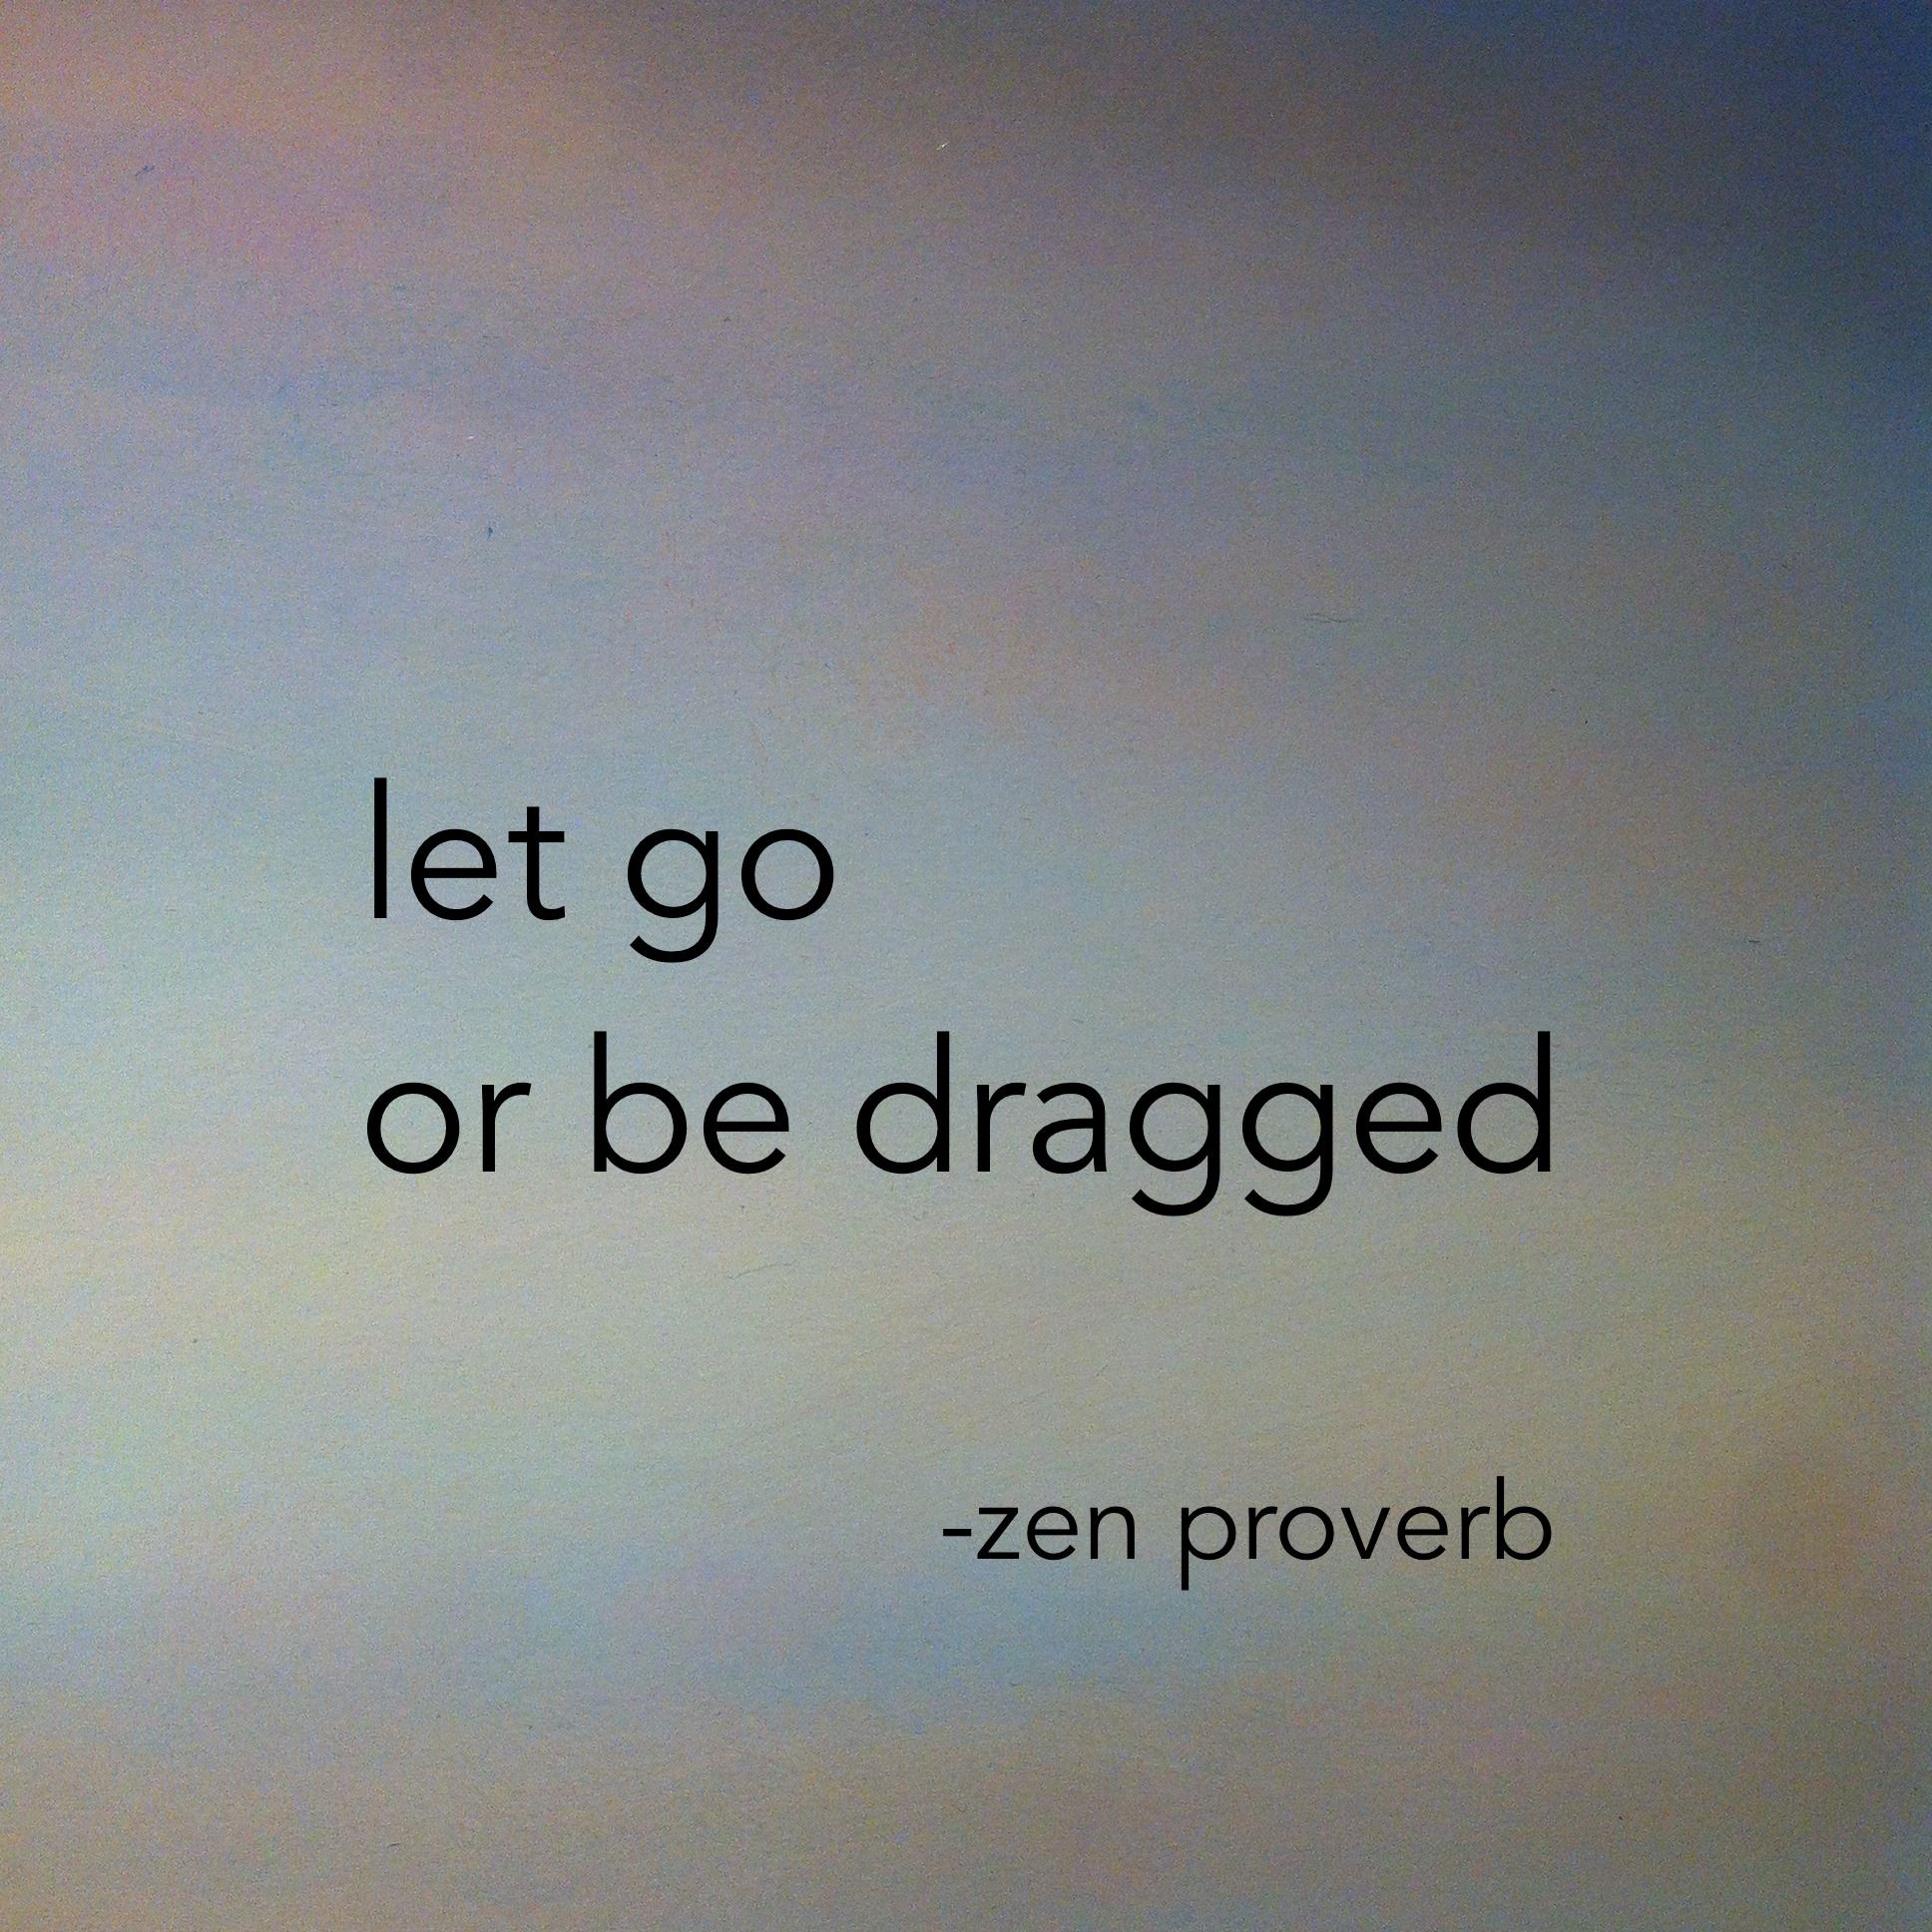 Let Go Or Be Dragged Zen Proverb Buddhist Inspired Life Life